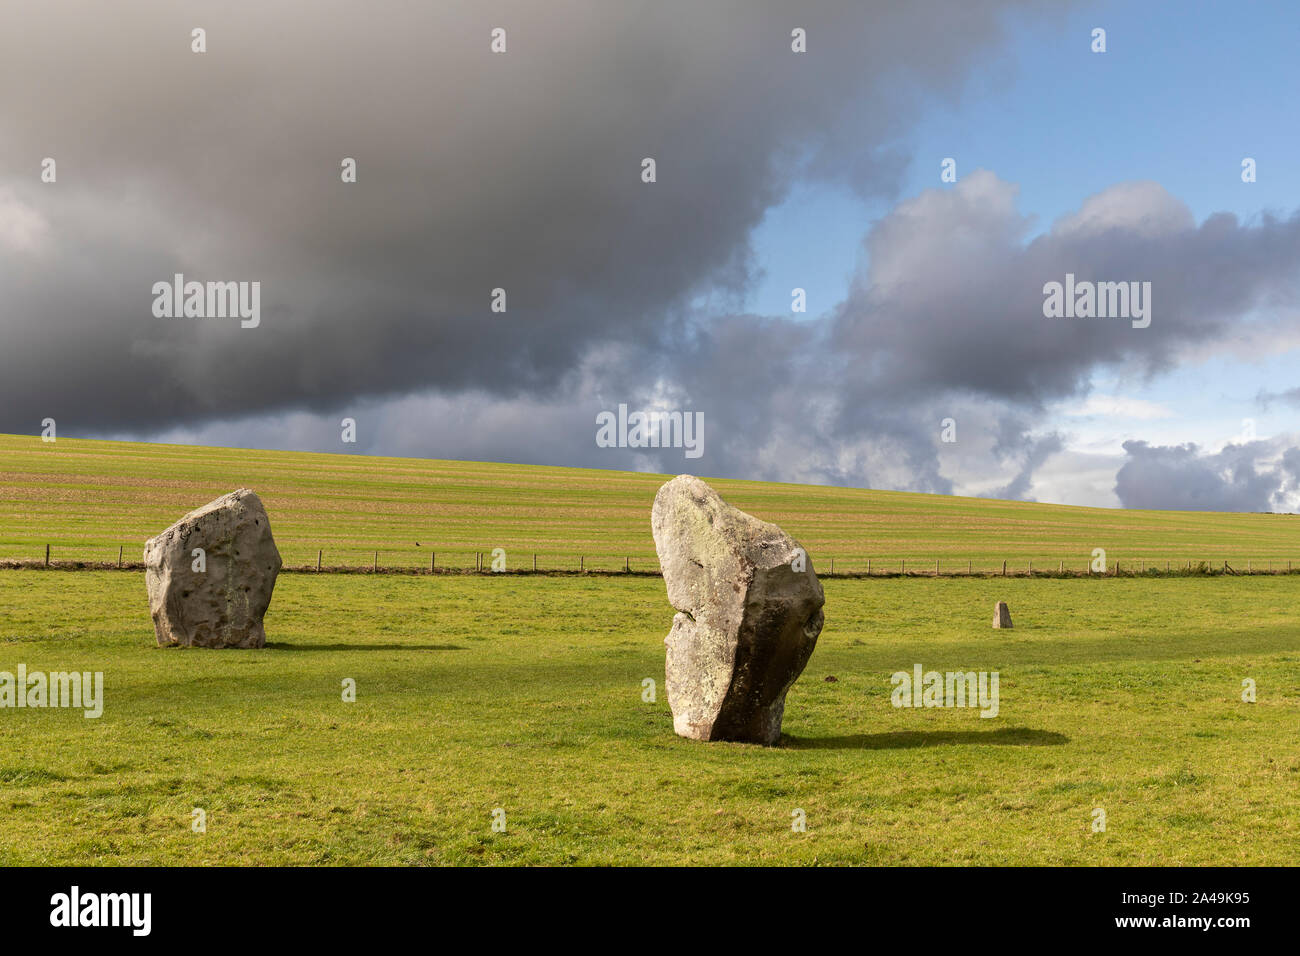 Standing stones at West Kennet Avenue, Avebury, Wiltshire, UK Stock Photo